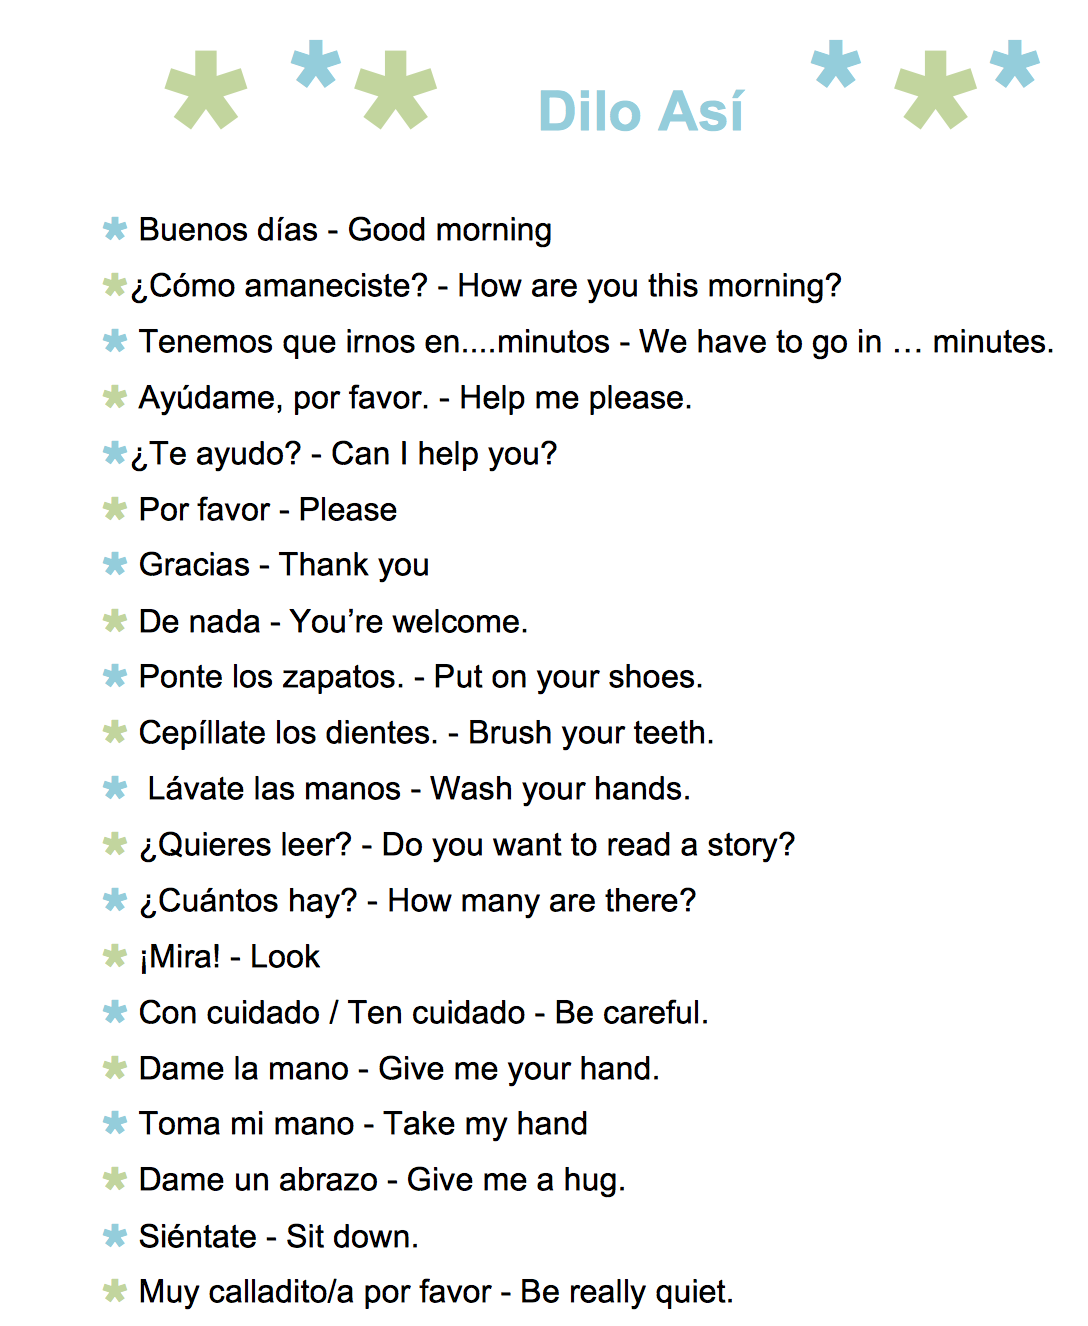 61 Common Spanish Phrases To Use With Kids A Printable List